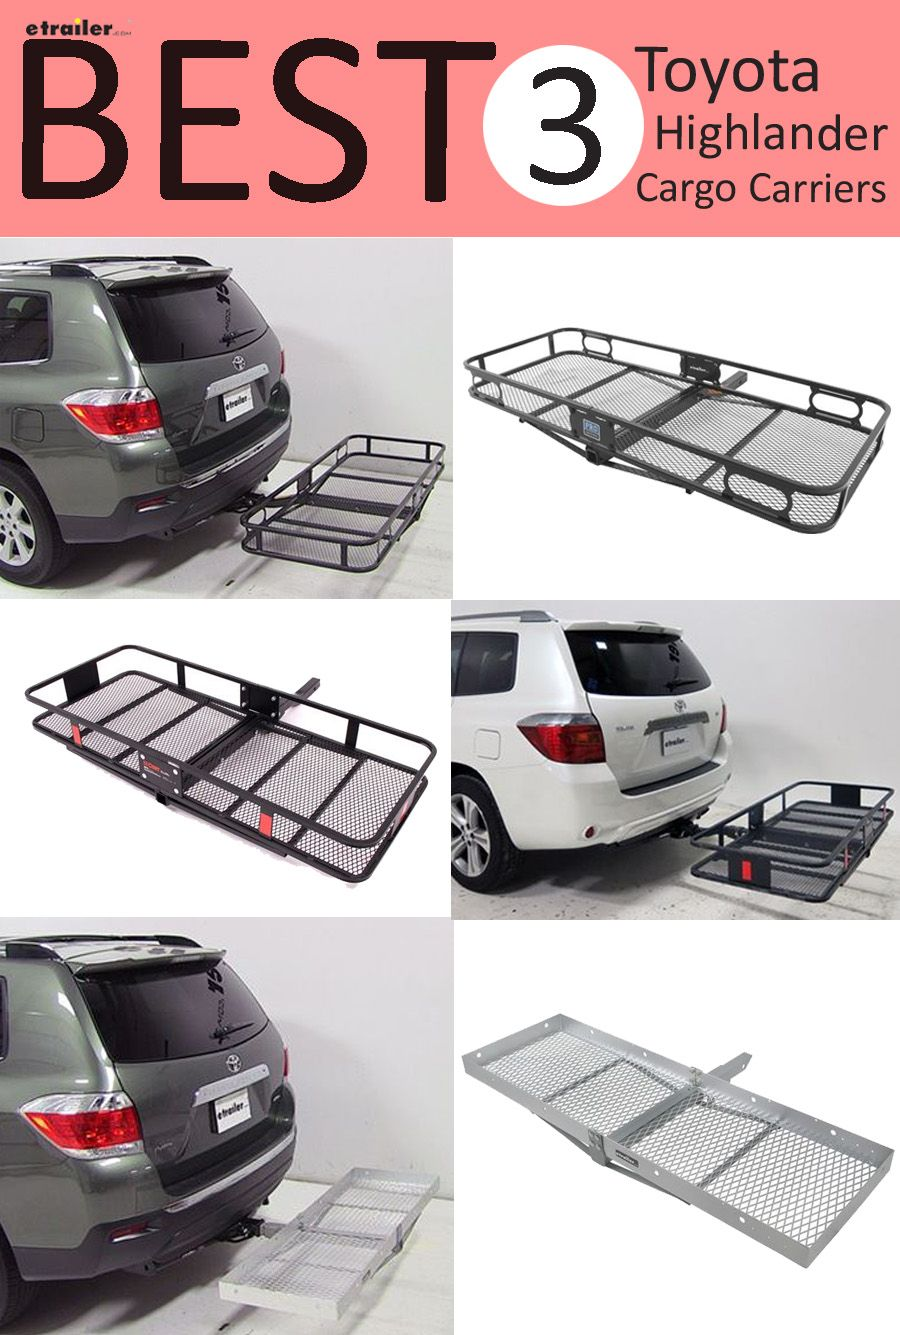 Here Are The Best 3 Cargo Carriers For Your Toyota Highlander Find Carrier All Of Gear On Trips And Outdoor Adventures